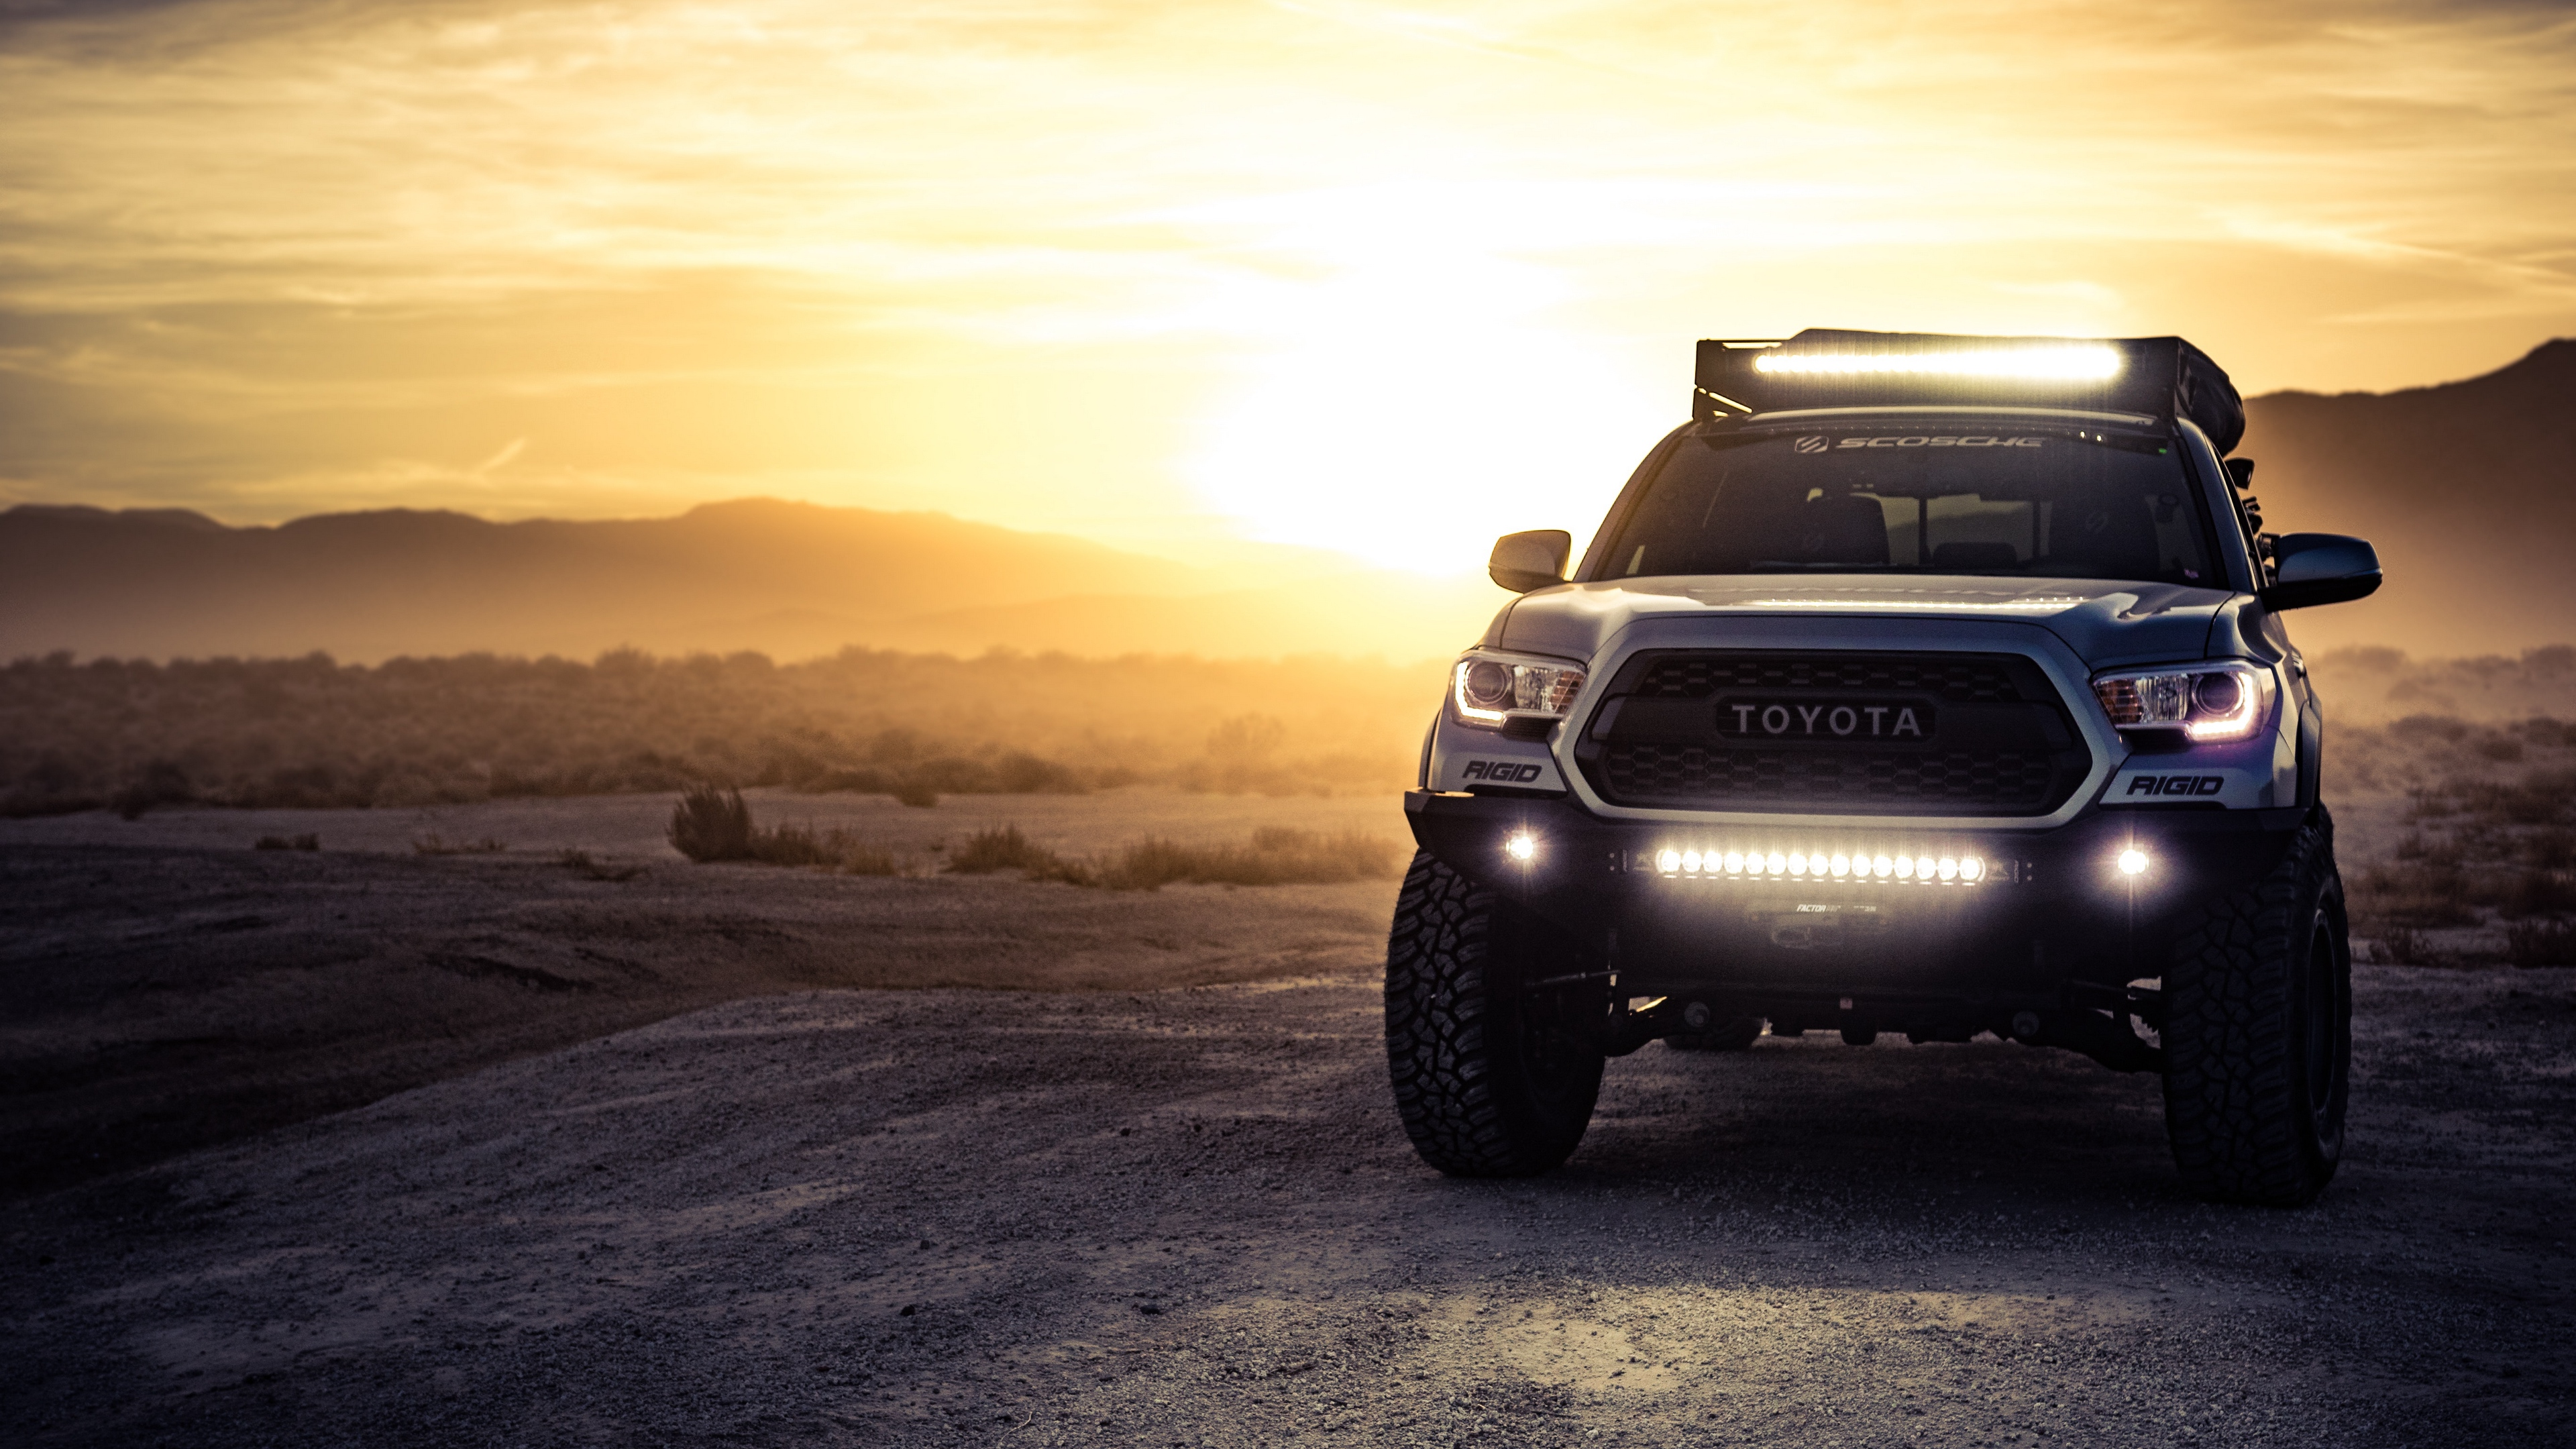 Toyota Tacoma Wallpapers